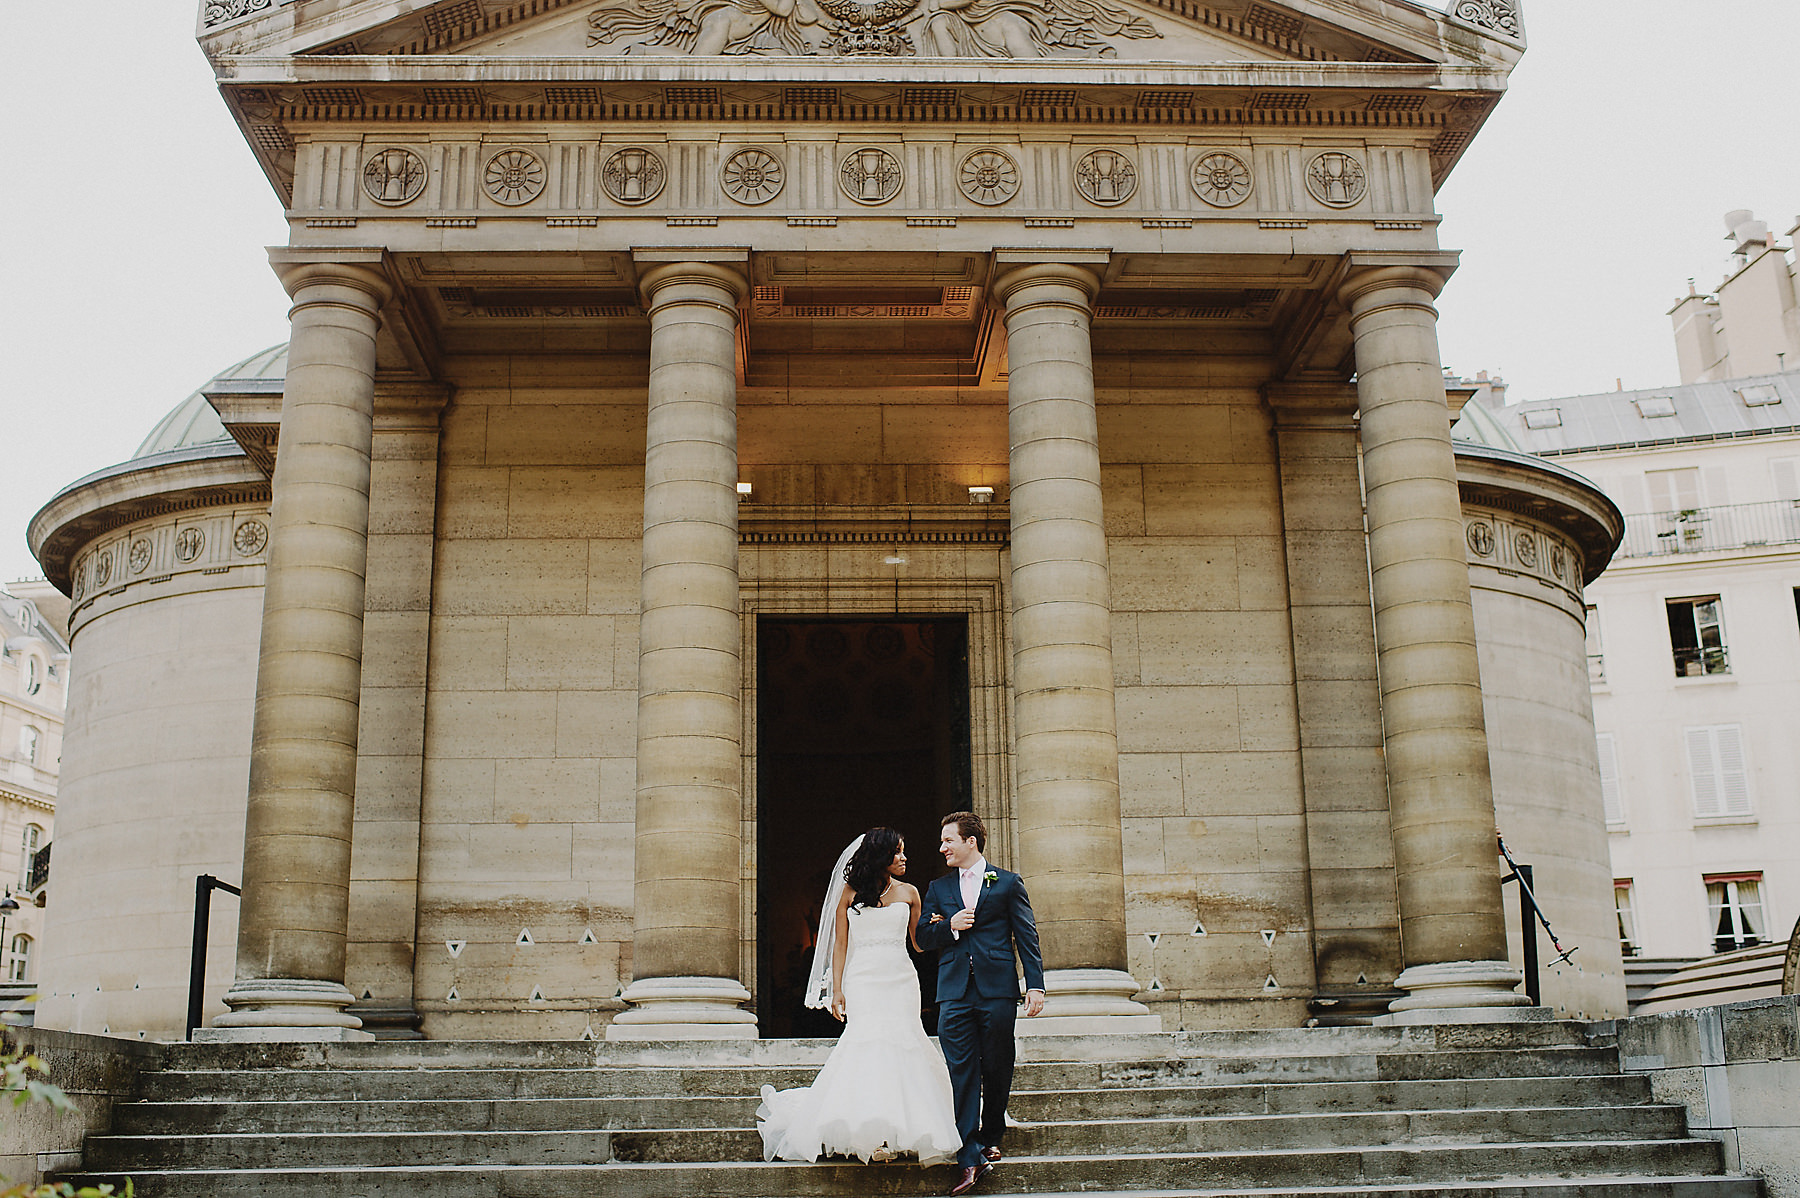 Arc de triumph wedding photographer